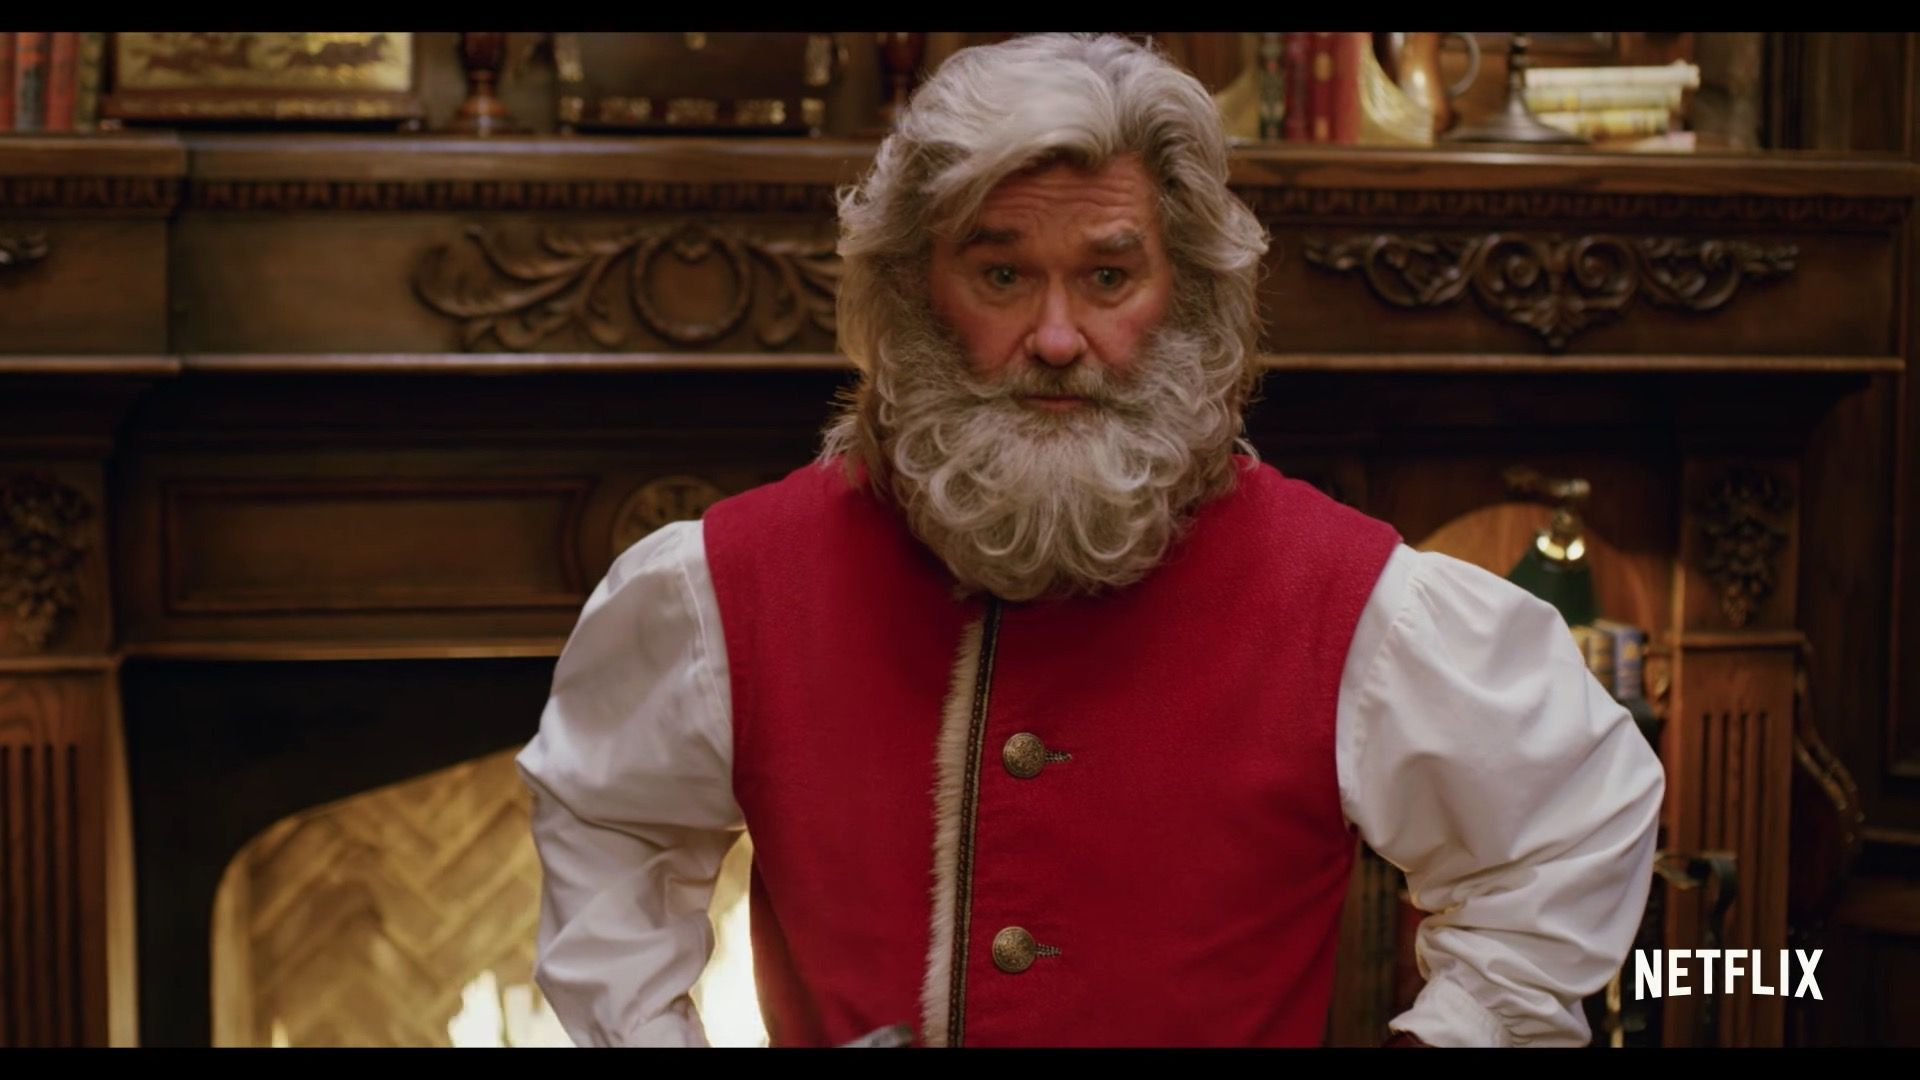 Netflix confirms Christmas Chronicles 2 with Deadpool star joining Kurt Russell and Goldie Hawn